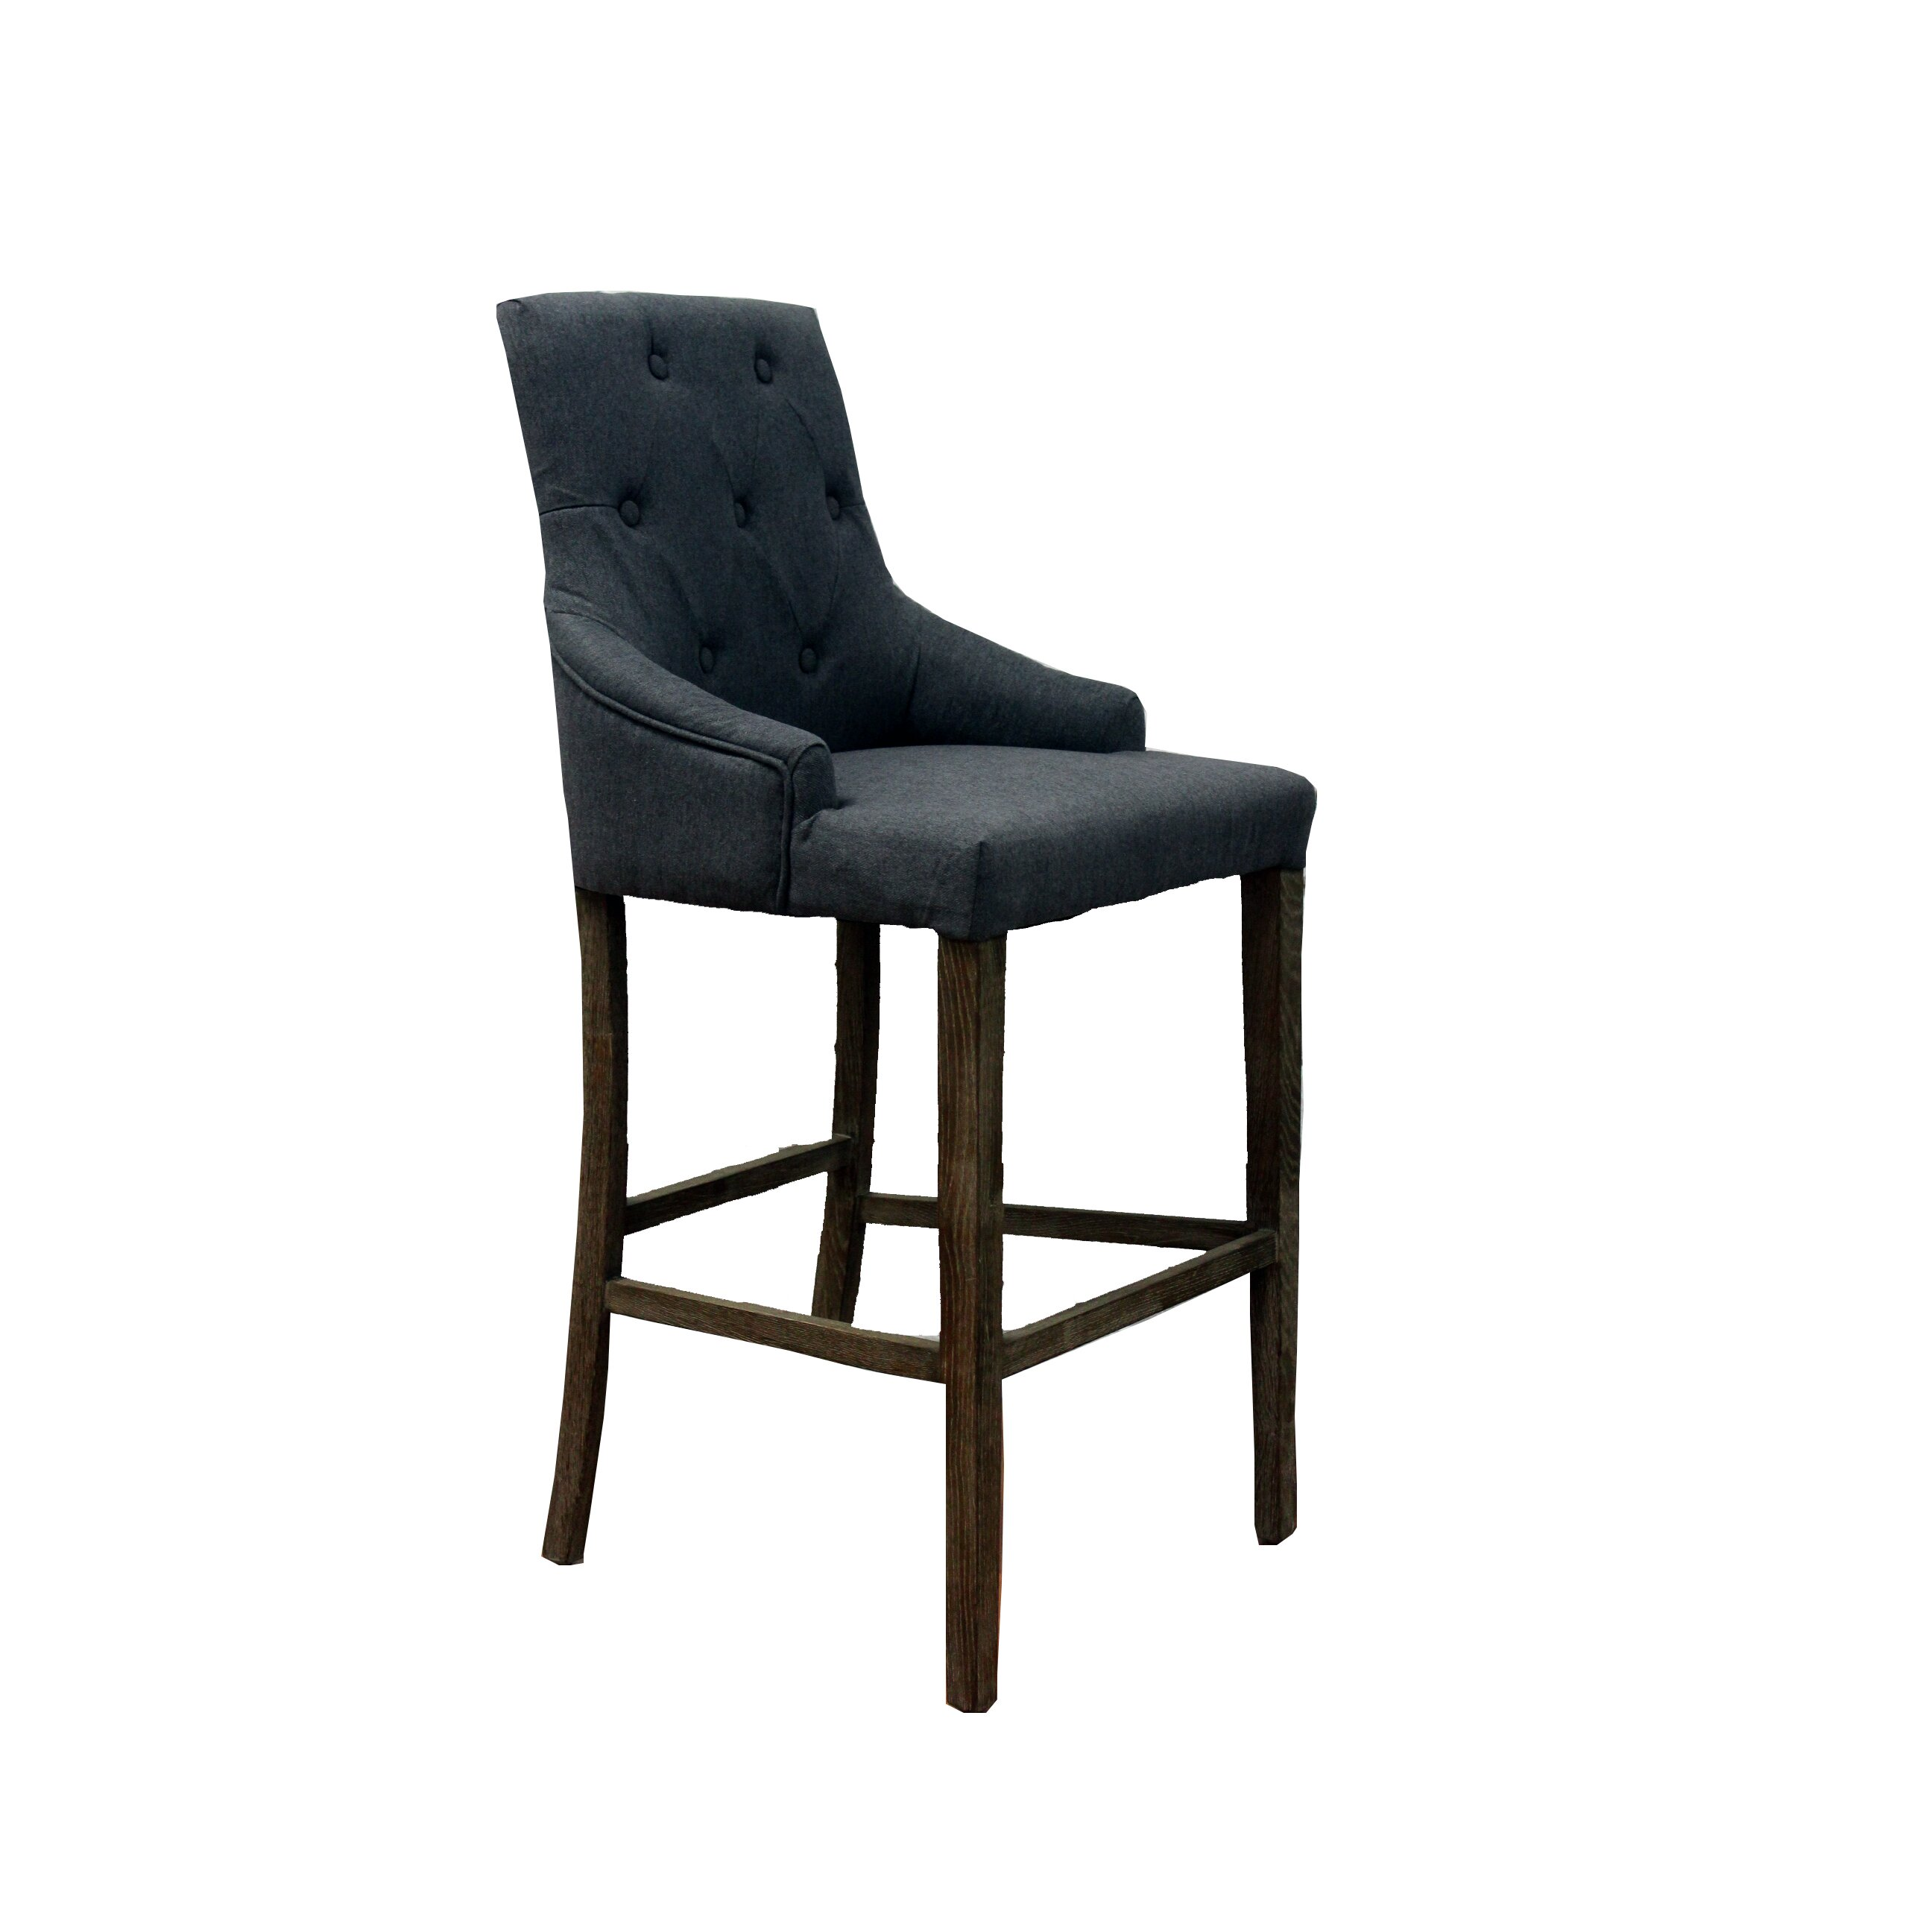 MOTI Furniture 26quot Bar Stool Wayfair : MOTI Furniture 26 Bar Stool from www.wayfair.com size 2592 x 2592 jpeg 361kB